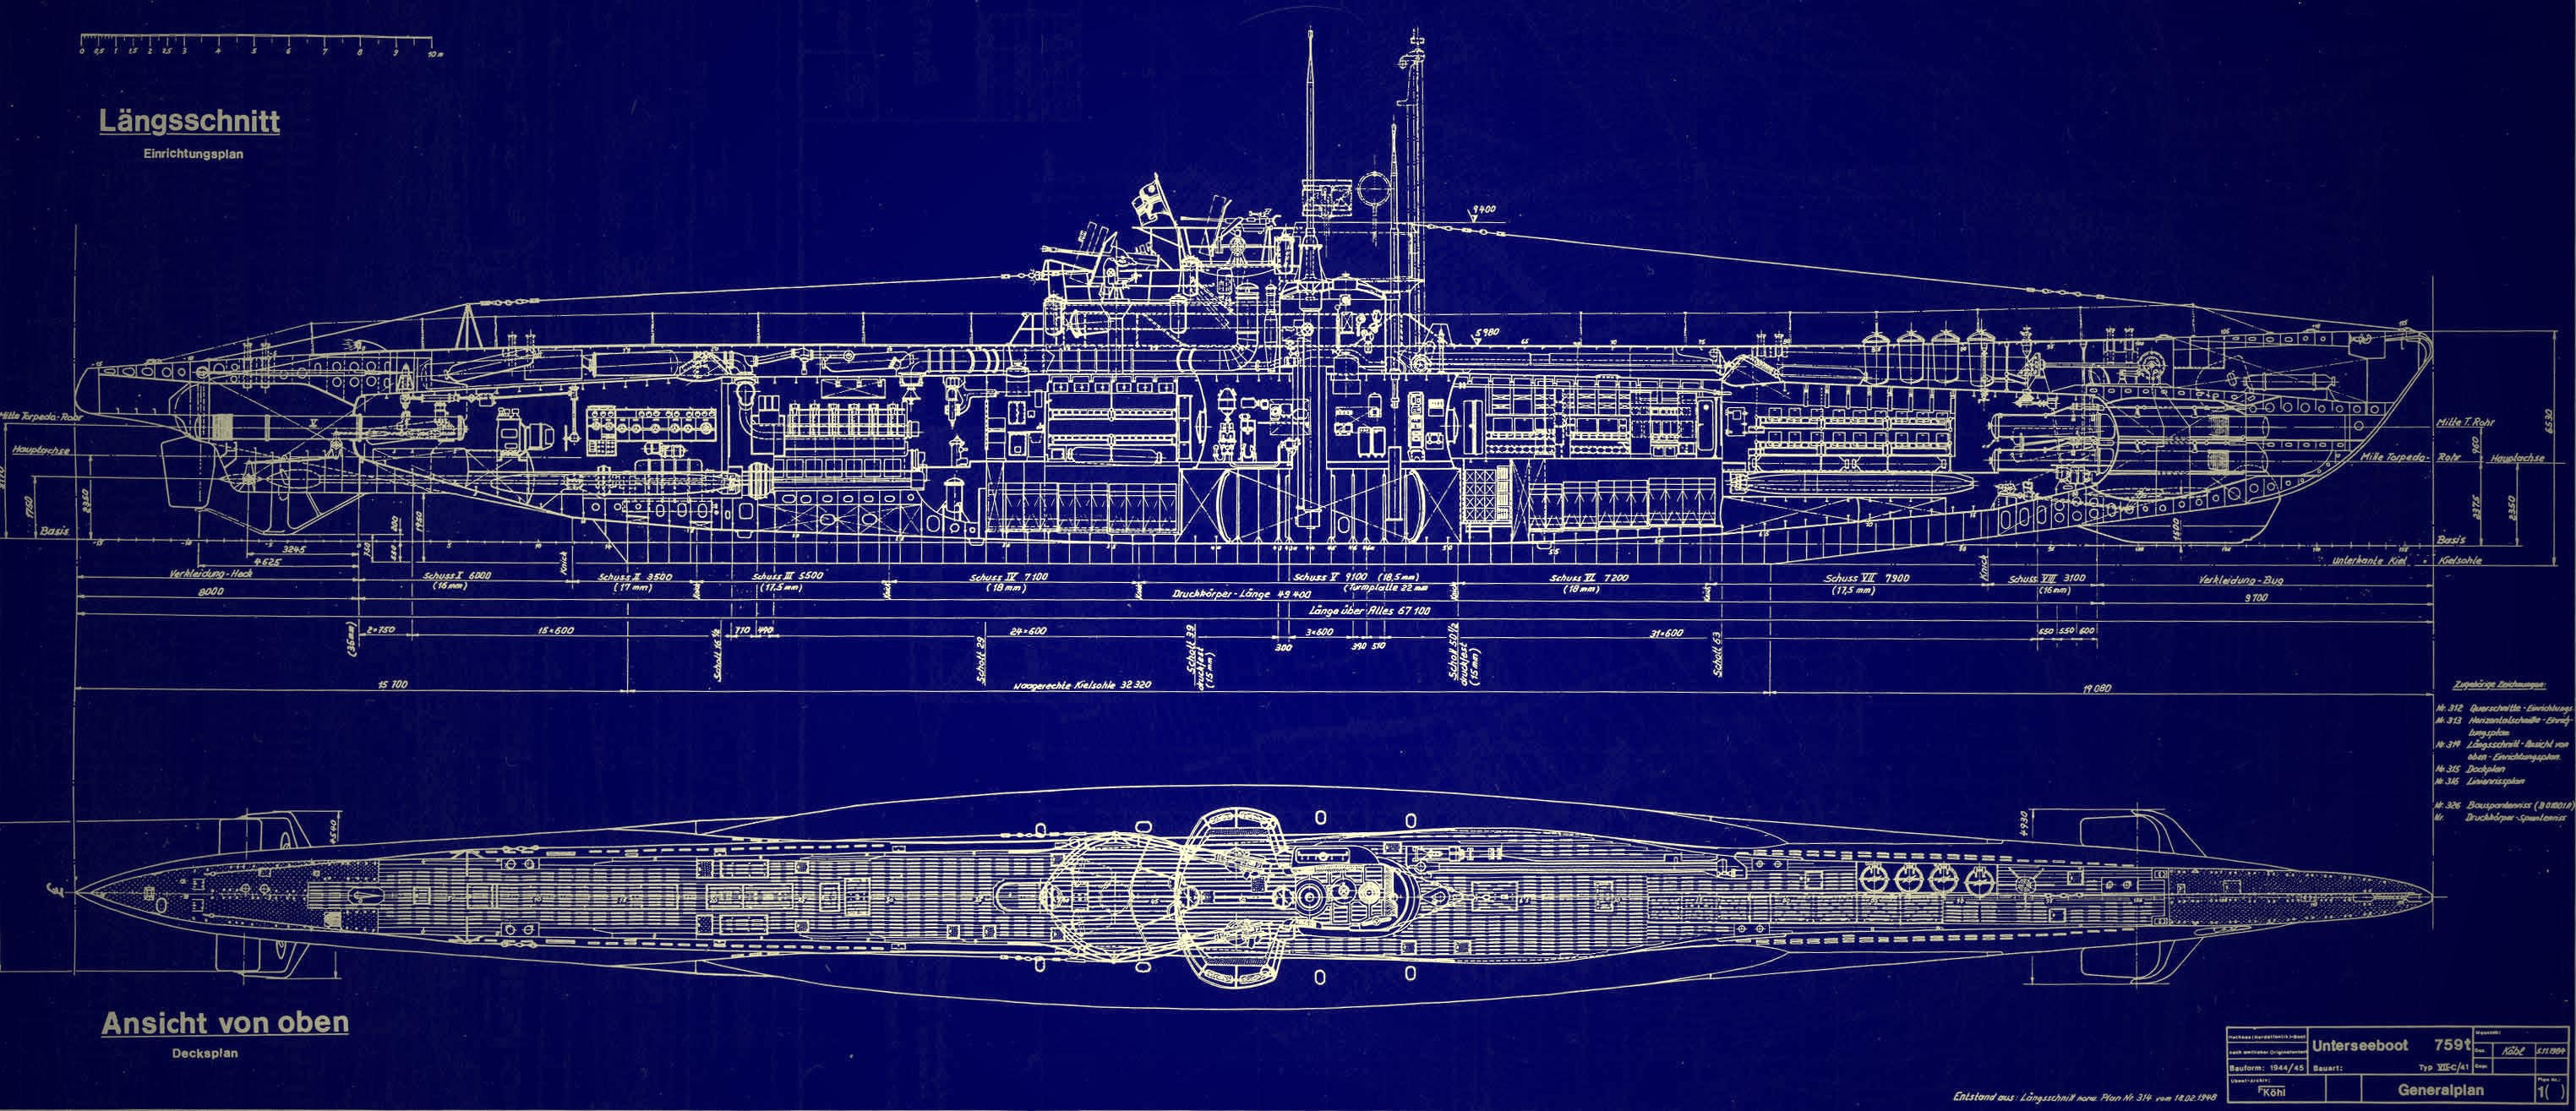 40+] Navy Submarine Wallpaper on WallpaperSafari Nuclear Submarine Schematics on ignition schematics, delco radio schematics, missile schematics, type 212 submarine, revolver schematics, battleship schematics, lcd tv schematics, snapper mower schematics, nuclear missile diagram, computer schematics, astute class submarine, nuclear power plant diagram, kilo class submarine, benjamin franklin class submarine, lada class submarine, iphone 6 schematics, oscar class submarine, sierra class submarine, victor class submarine, seawolf class submarine, ham radio schematics, akula class submarine, russian submarine tk-208 dmitri donskoi, whiskey class submarine, delta class submarine, assembly line schematics, virginia class submarine, nuclear sub interior, los angeles class submarine, aircraft carrier schematics, alfa class submarine, november class submarine, backhoe hydraulics schematics, borei class submarine, rocket schematics, vanguard class submarine, nuclear sub reactor, ohio class submarine, vacuum tube schematics,